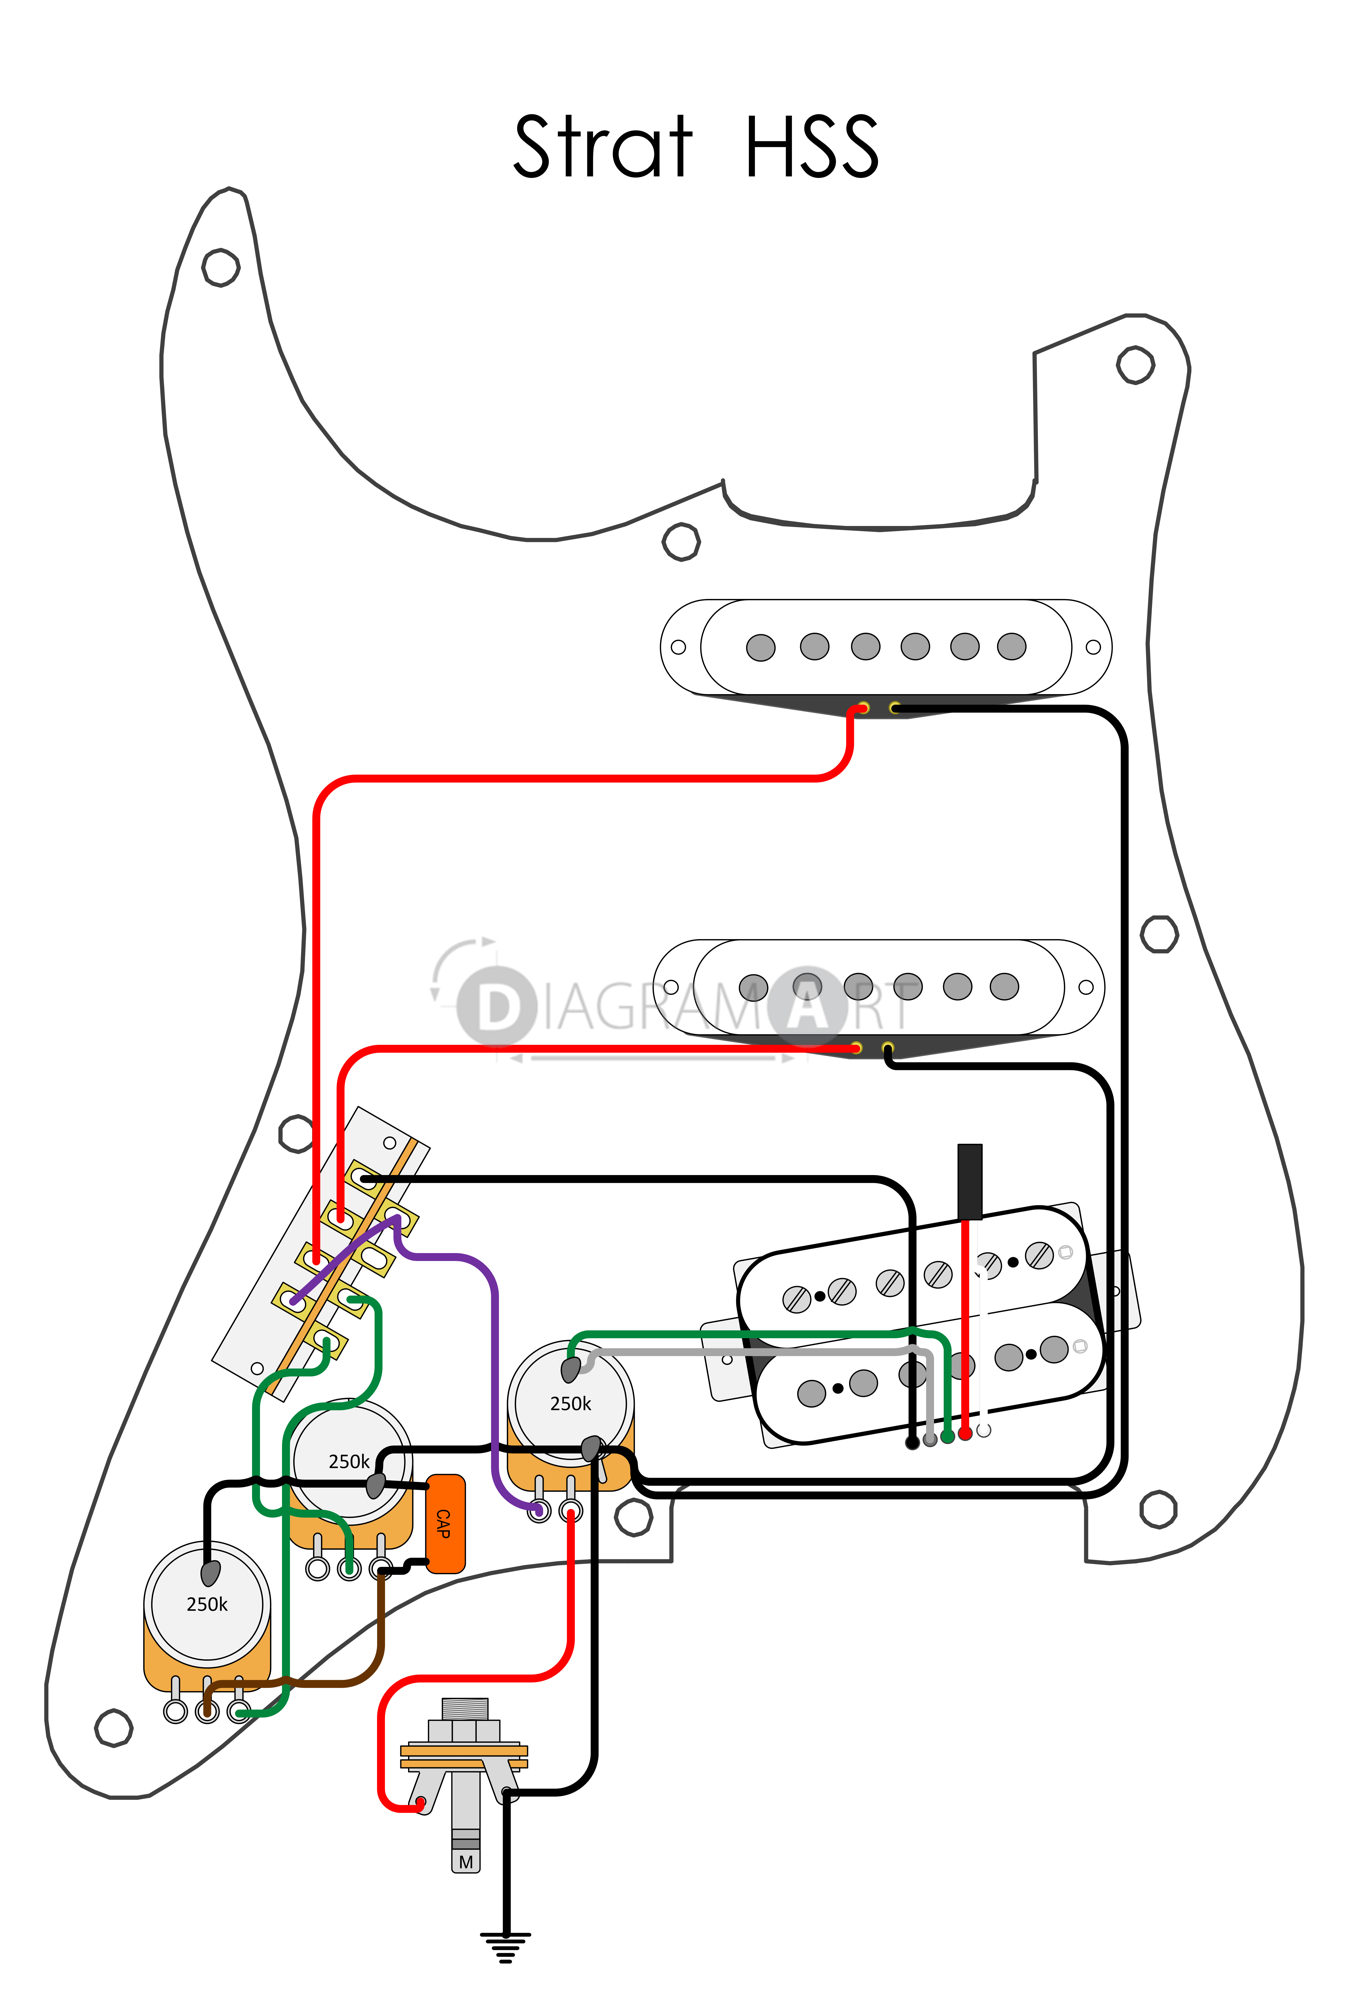 electric guitar wiring schematic diagrams rh ogmconsulting co Fender Electric Guitar Wiring Diagrams Electric Bass Guitar Wiring Diagrams